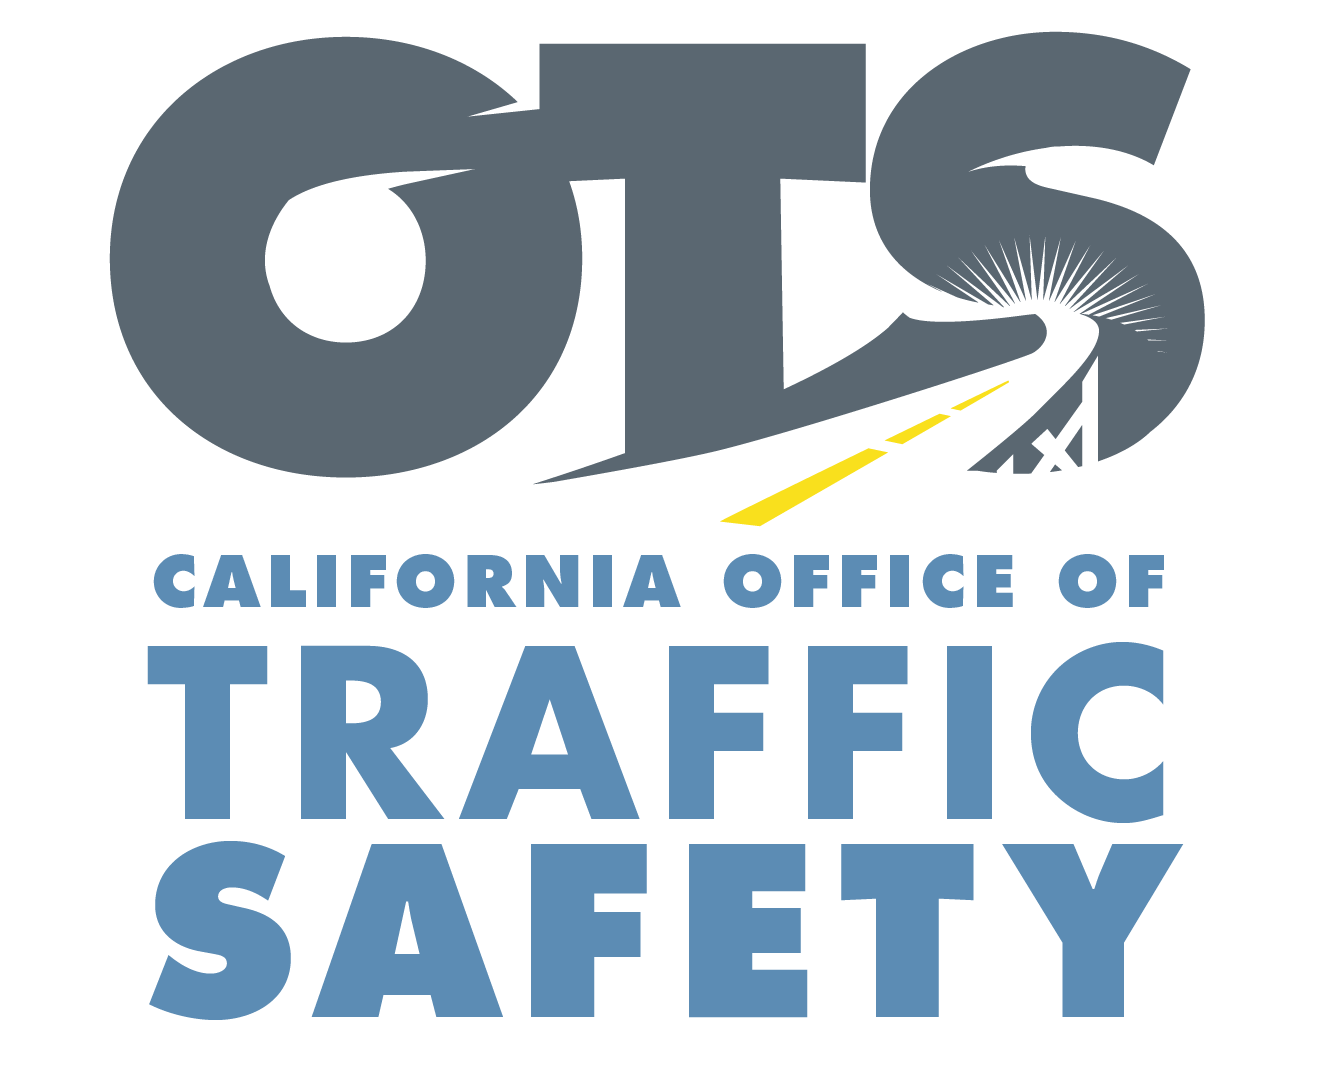 California Office of Traffic Safety logo